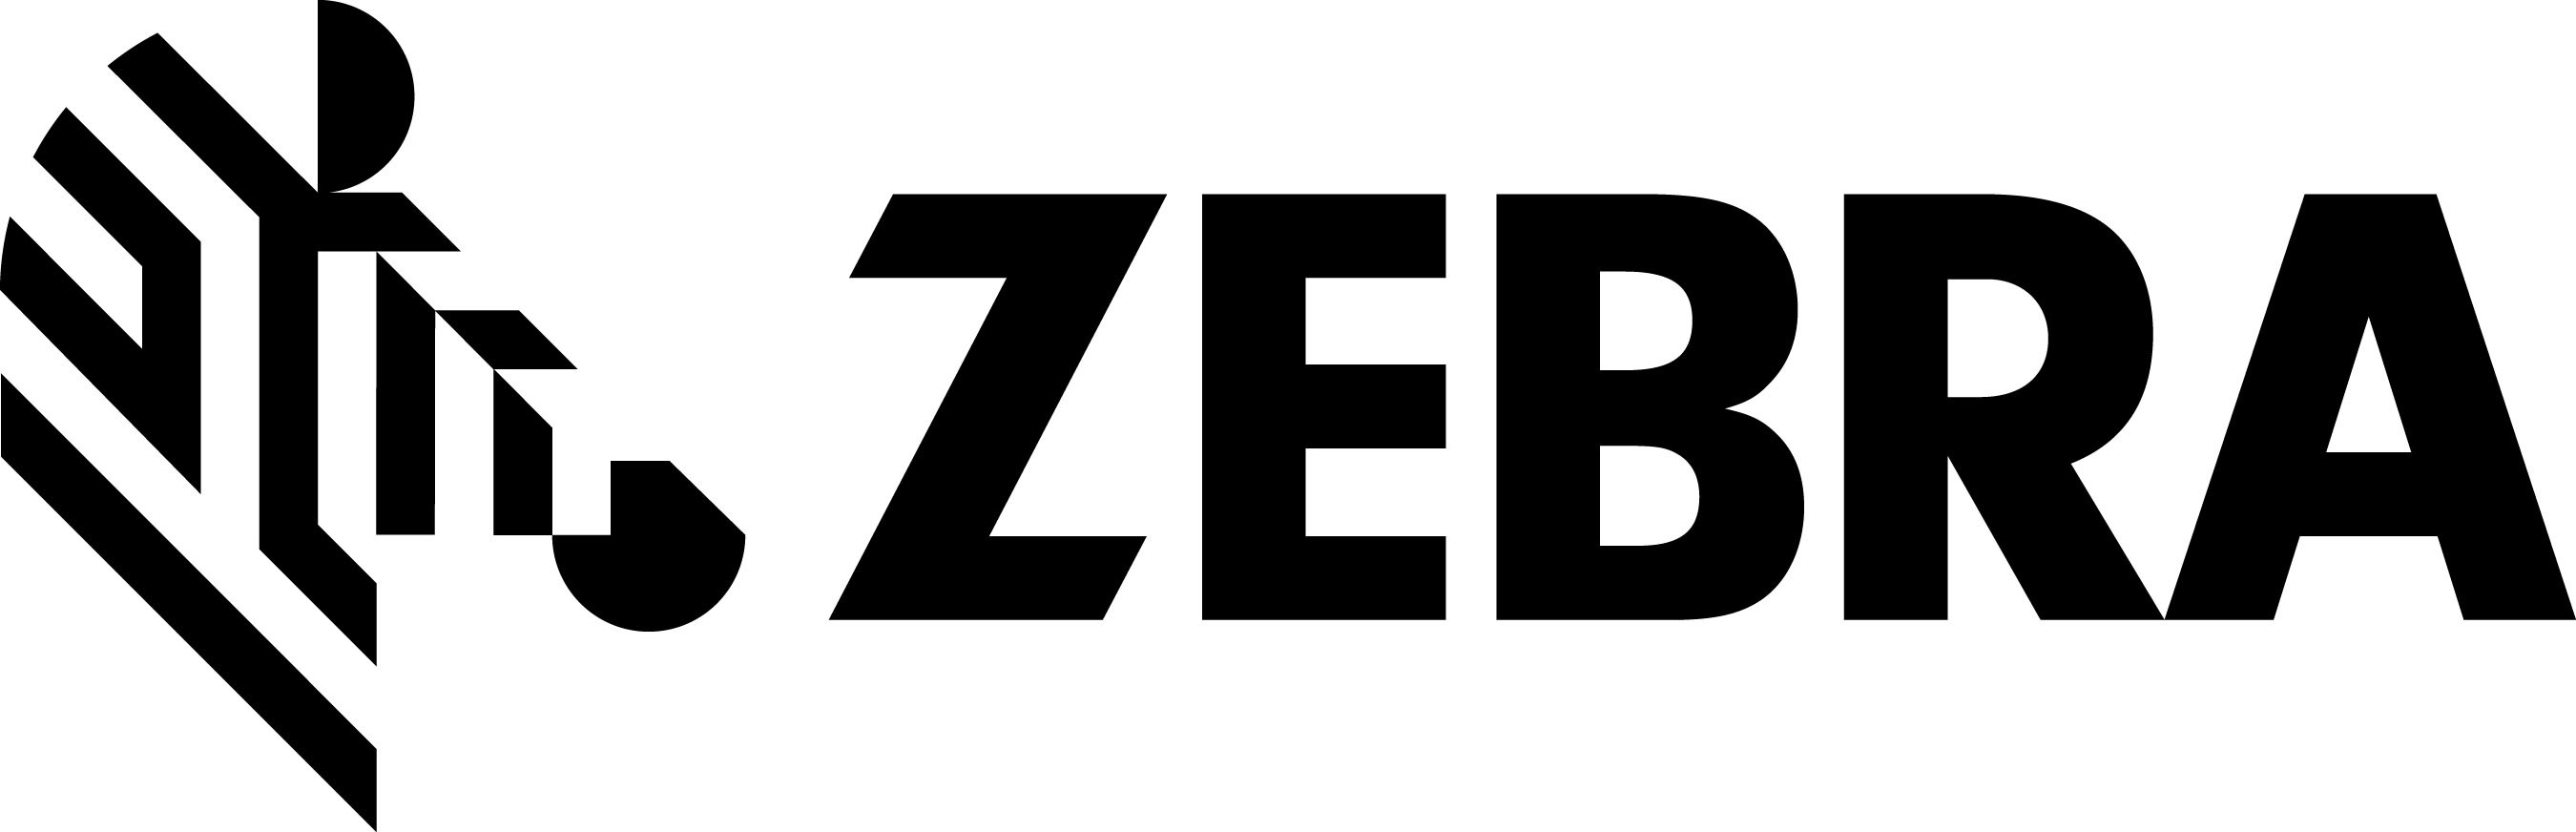 Zebra Technologies to Restate Certain Prior Period Financials; Expects Completion by Nov. 15